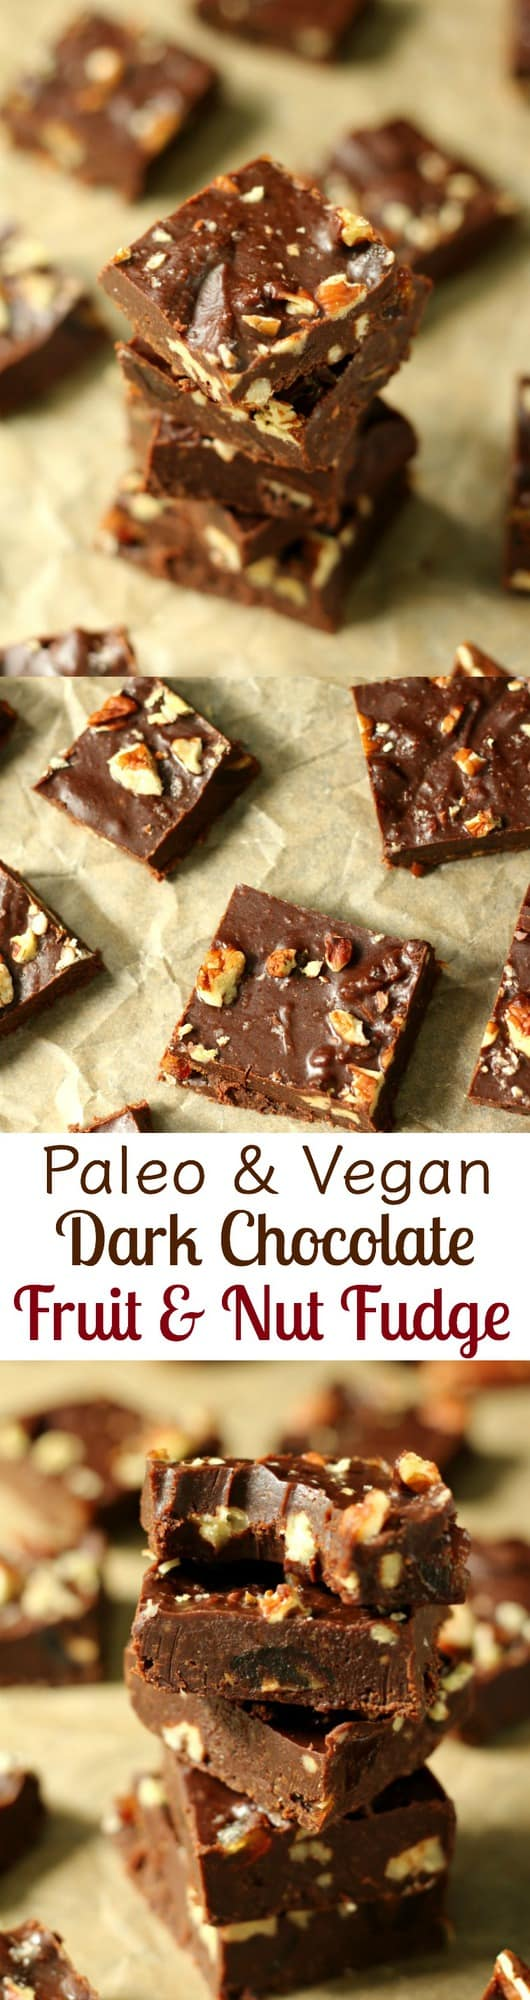 paleo and vegan dark chocolate fruit and nut fudge - dates and pecans ...